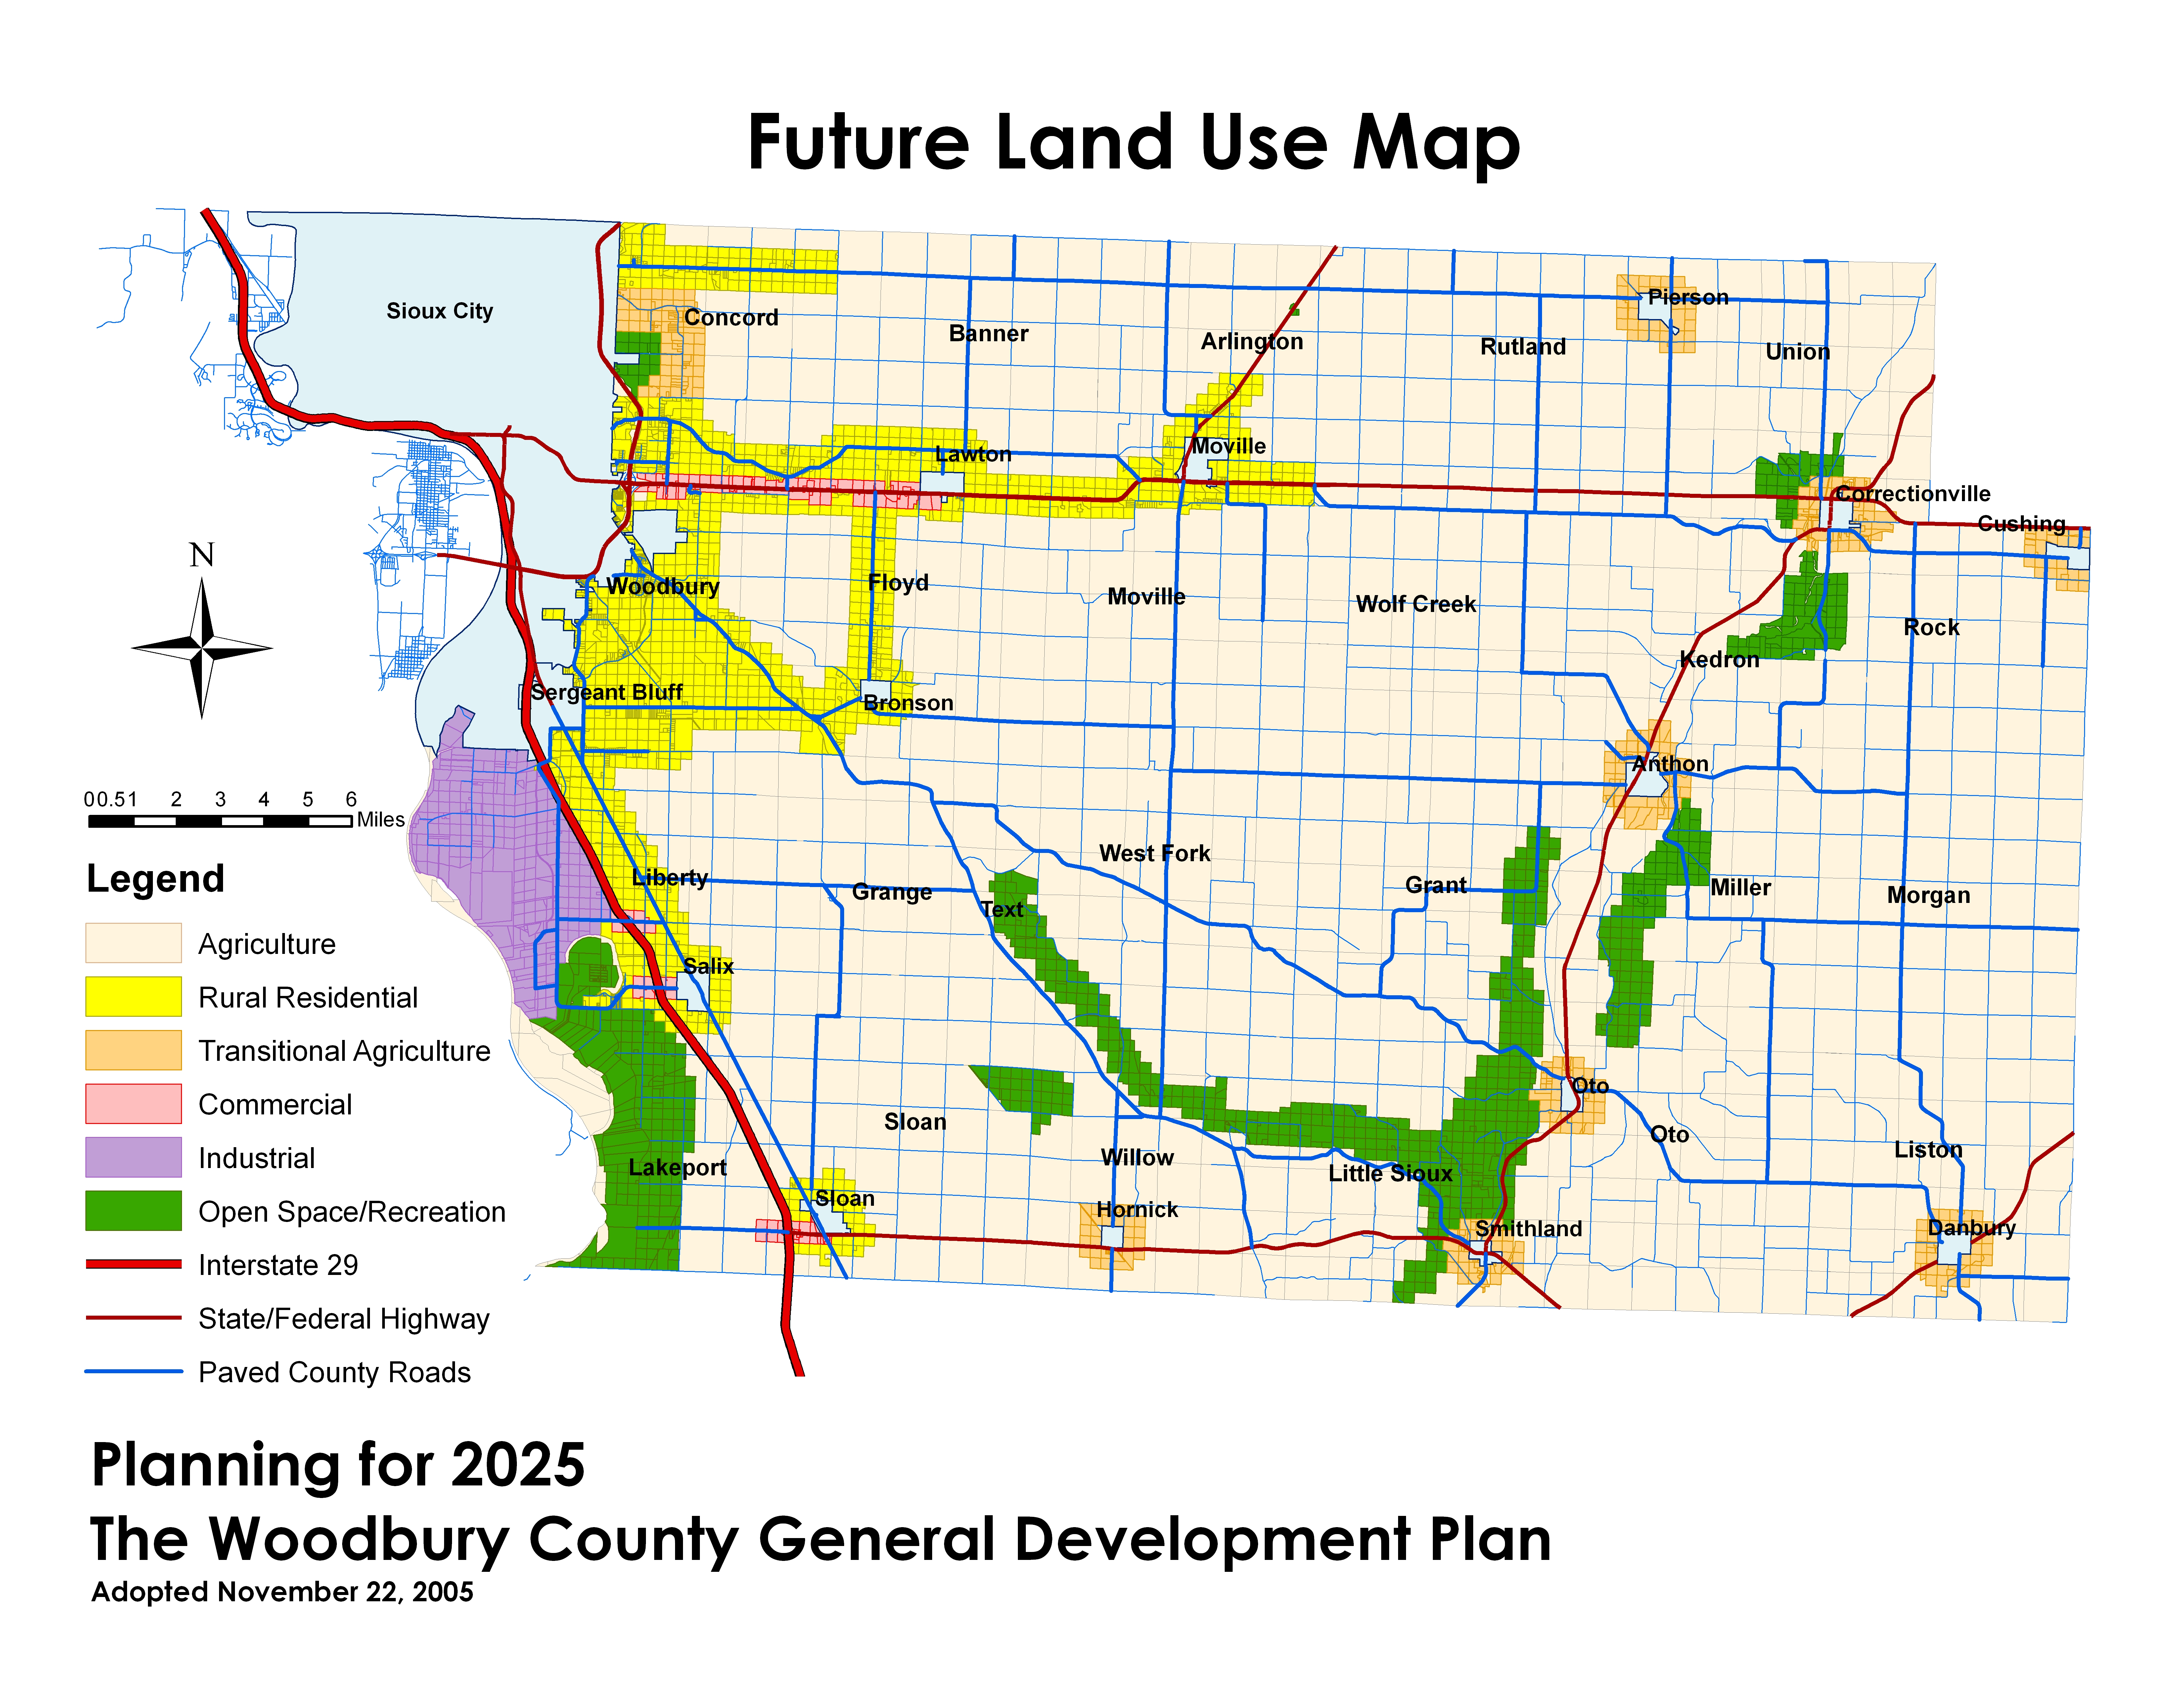 Download This File Future Land Use Map Adopted 11 22 05